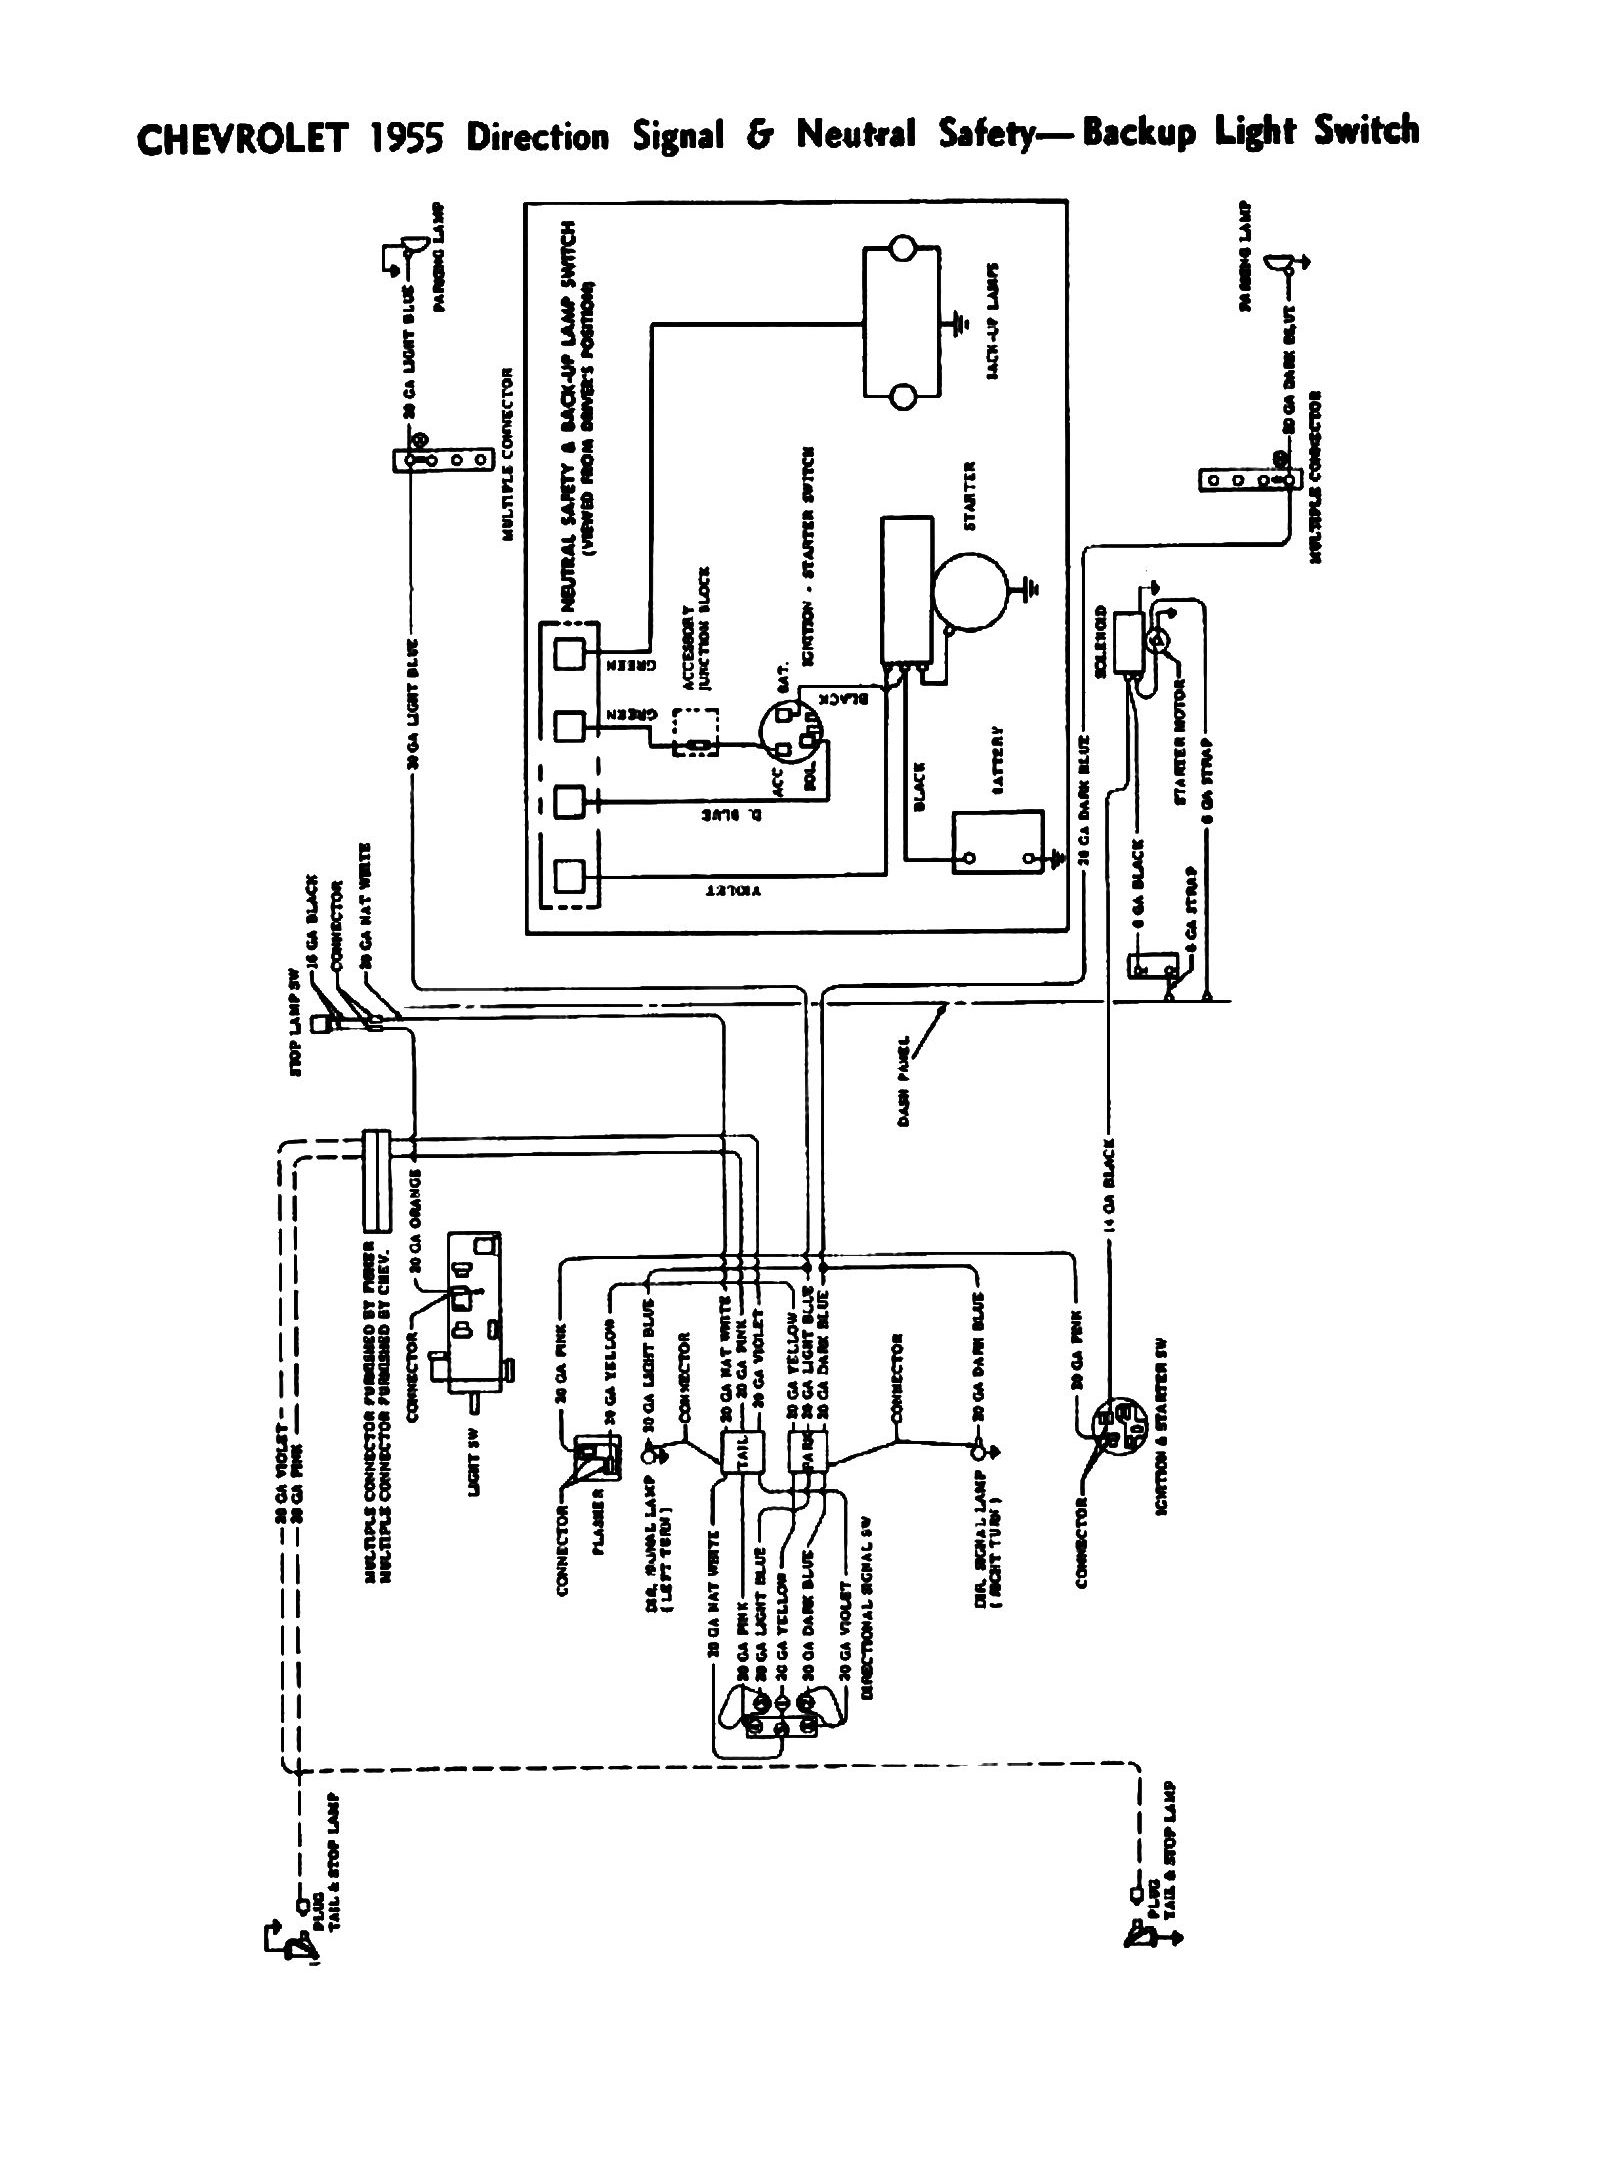 Chevy Starter Wiring Diagram Ignition Wiring Diagram Wiring New Jegs Mini Starter Chevy Starter Solenoid Wiring Diagram additionally 8964R08 Steering Linkage as well 1955 T Bird Wiring Diagram 1955 55 Ford Thunderbird T Bird likewise 55 Chevy Turn Signal Wiring also Cs144 Wiring Diagram. on 55 chevy ignition switch wiring